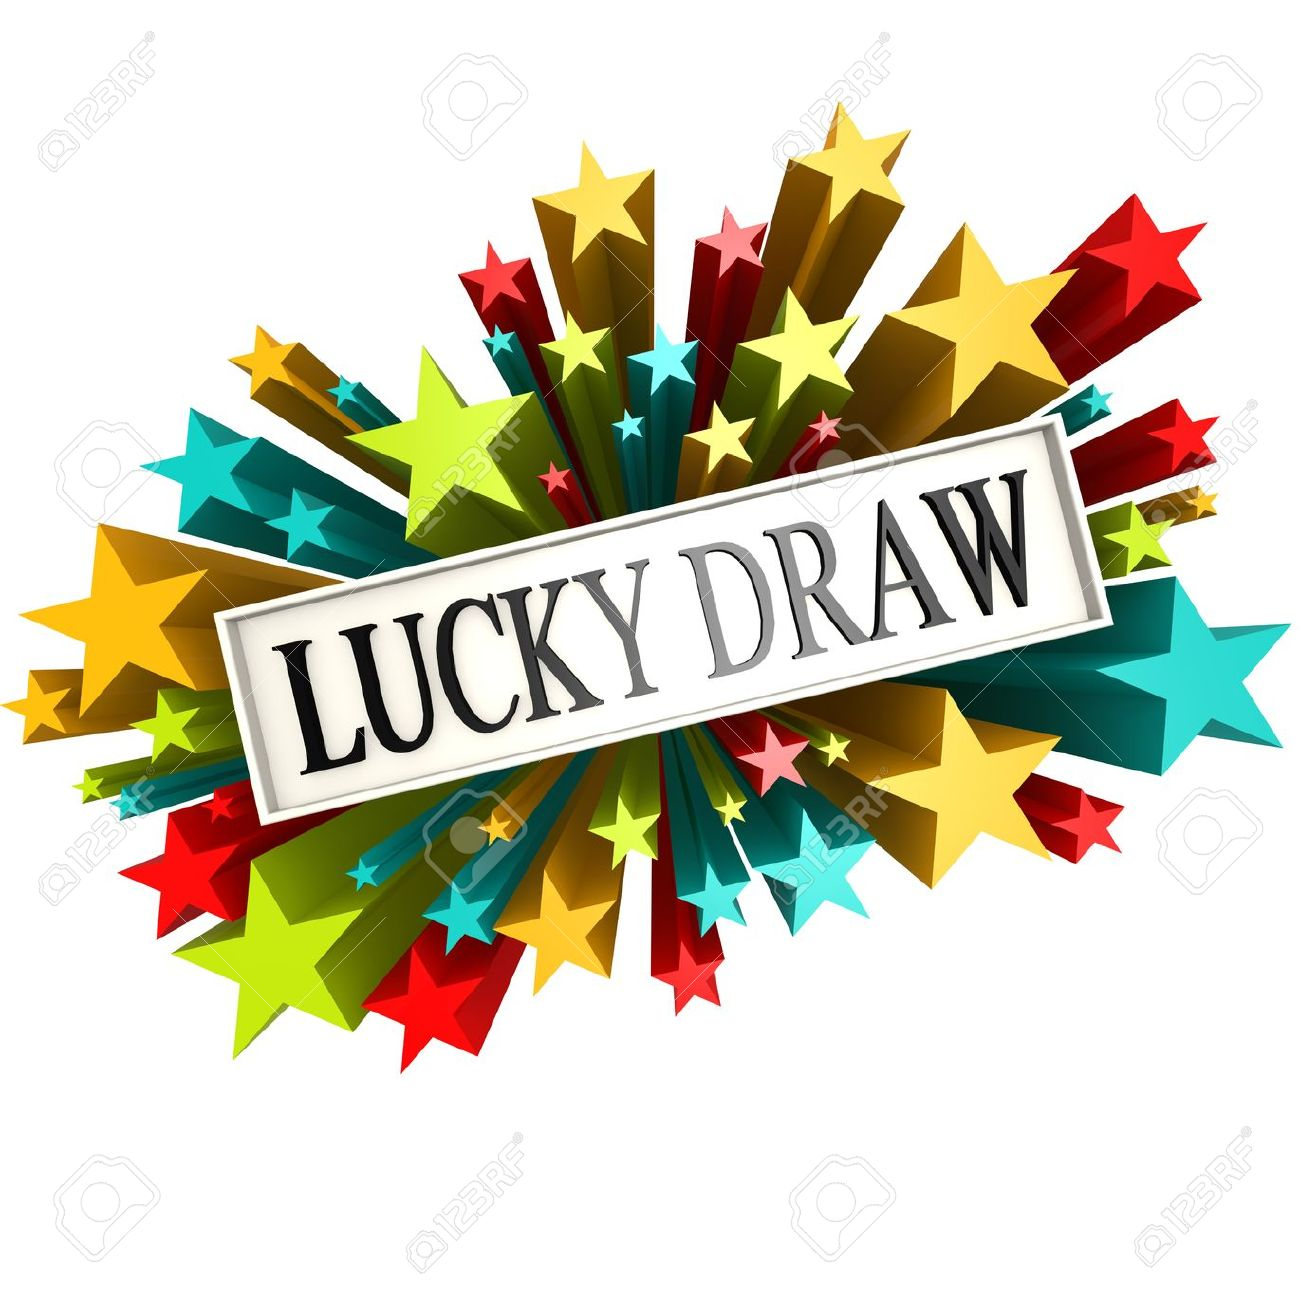 Lucky Draw PNG - 44171